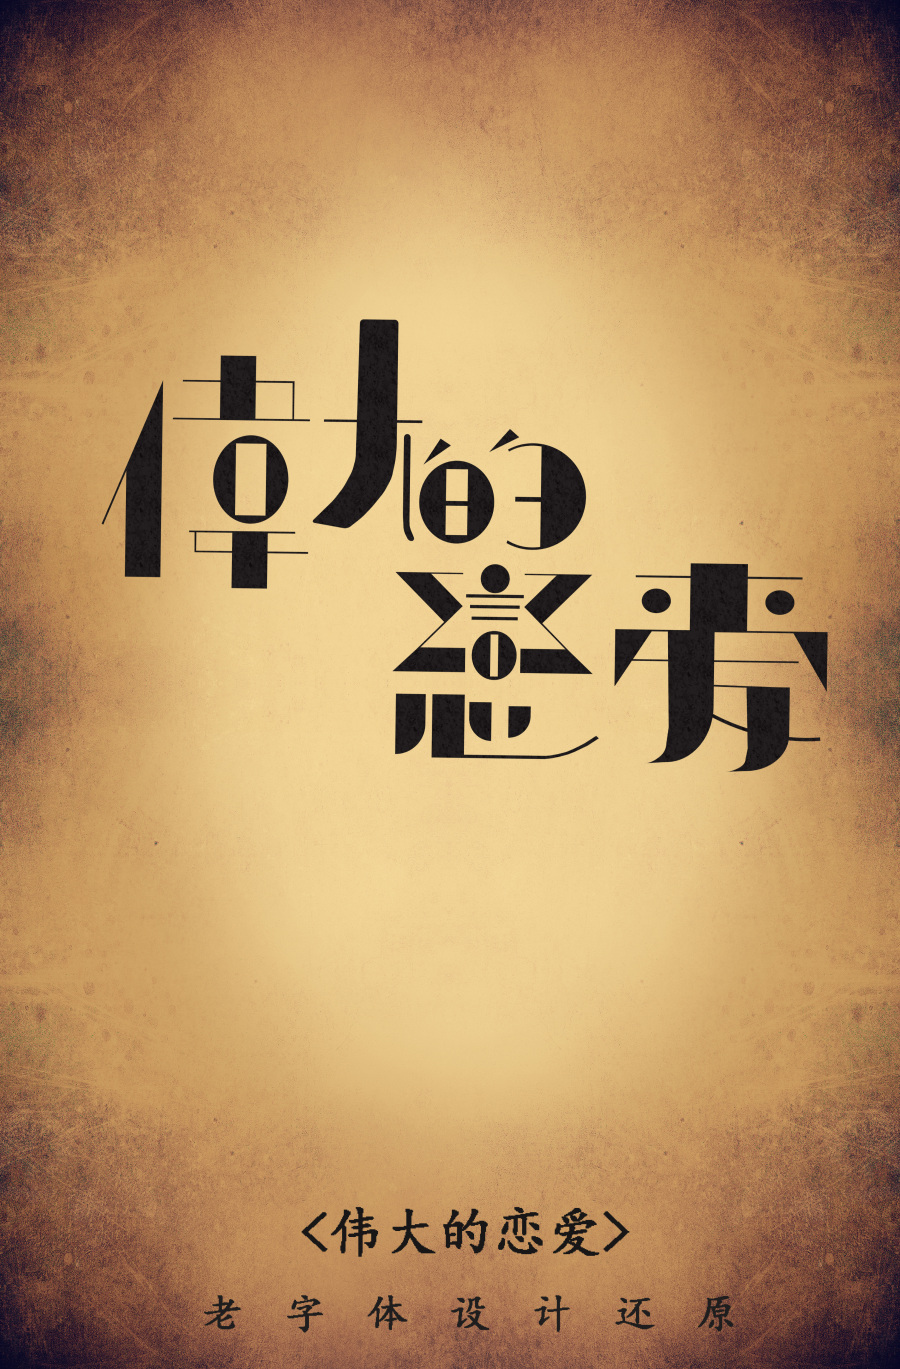 155+ Excellent Chinese font design work set